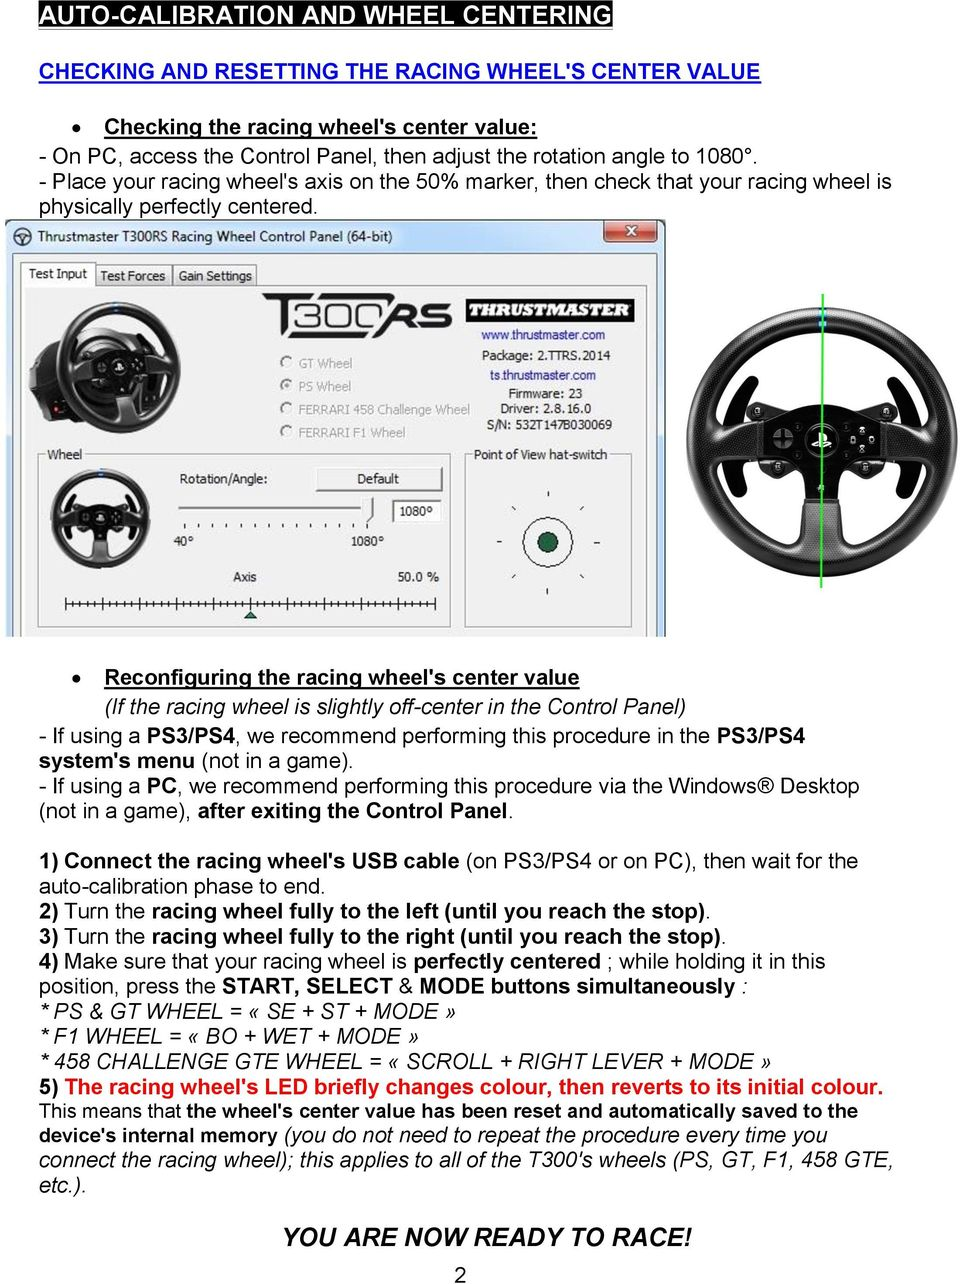 Reconfiguring the racing wheel's center value (If the racing wheel is slightly off-center in the Control Panel) - If using a PS3/PS4, we recommend performing this procedure in the PS3/PS4 system's